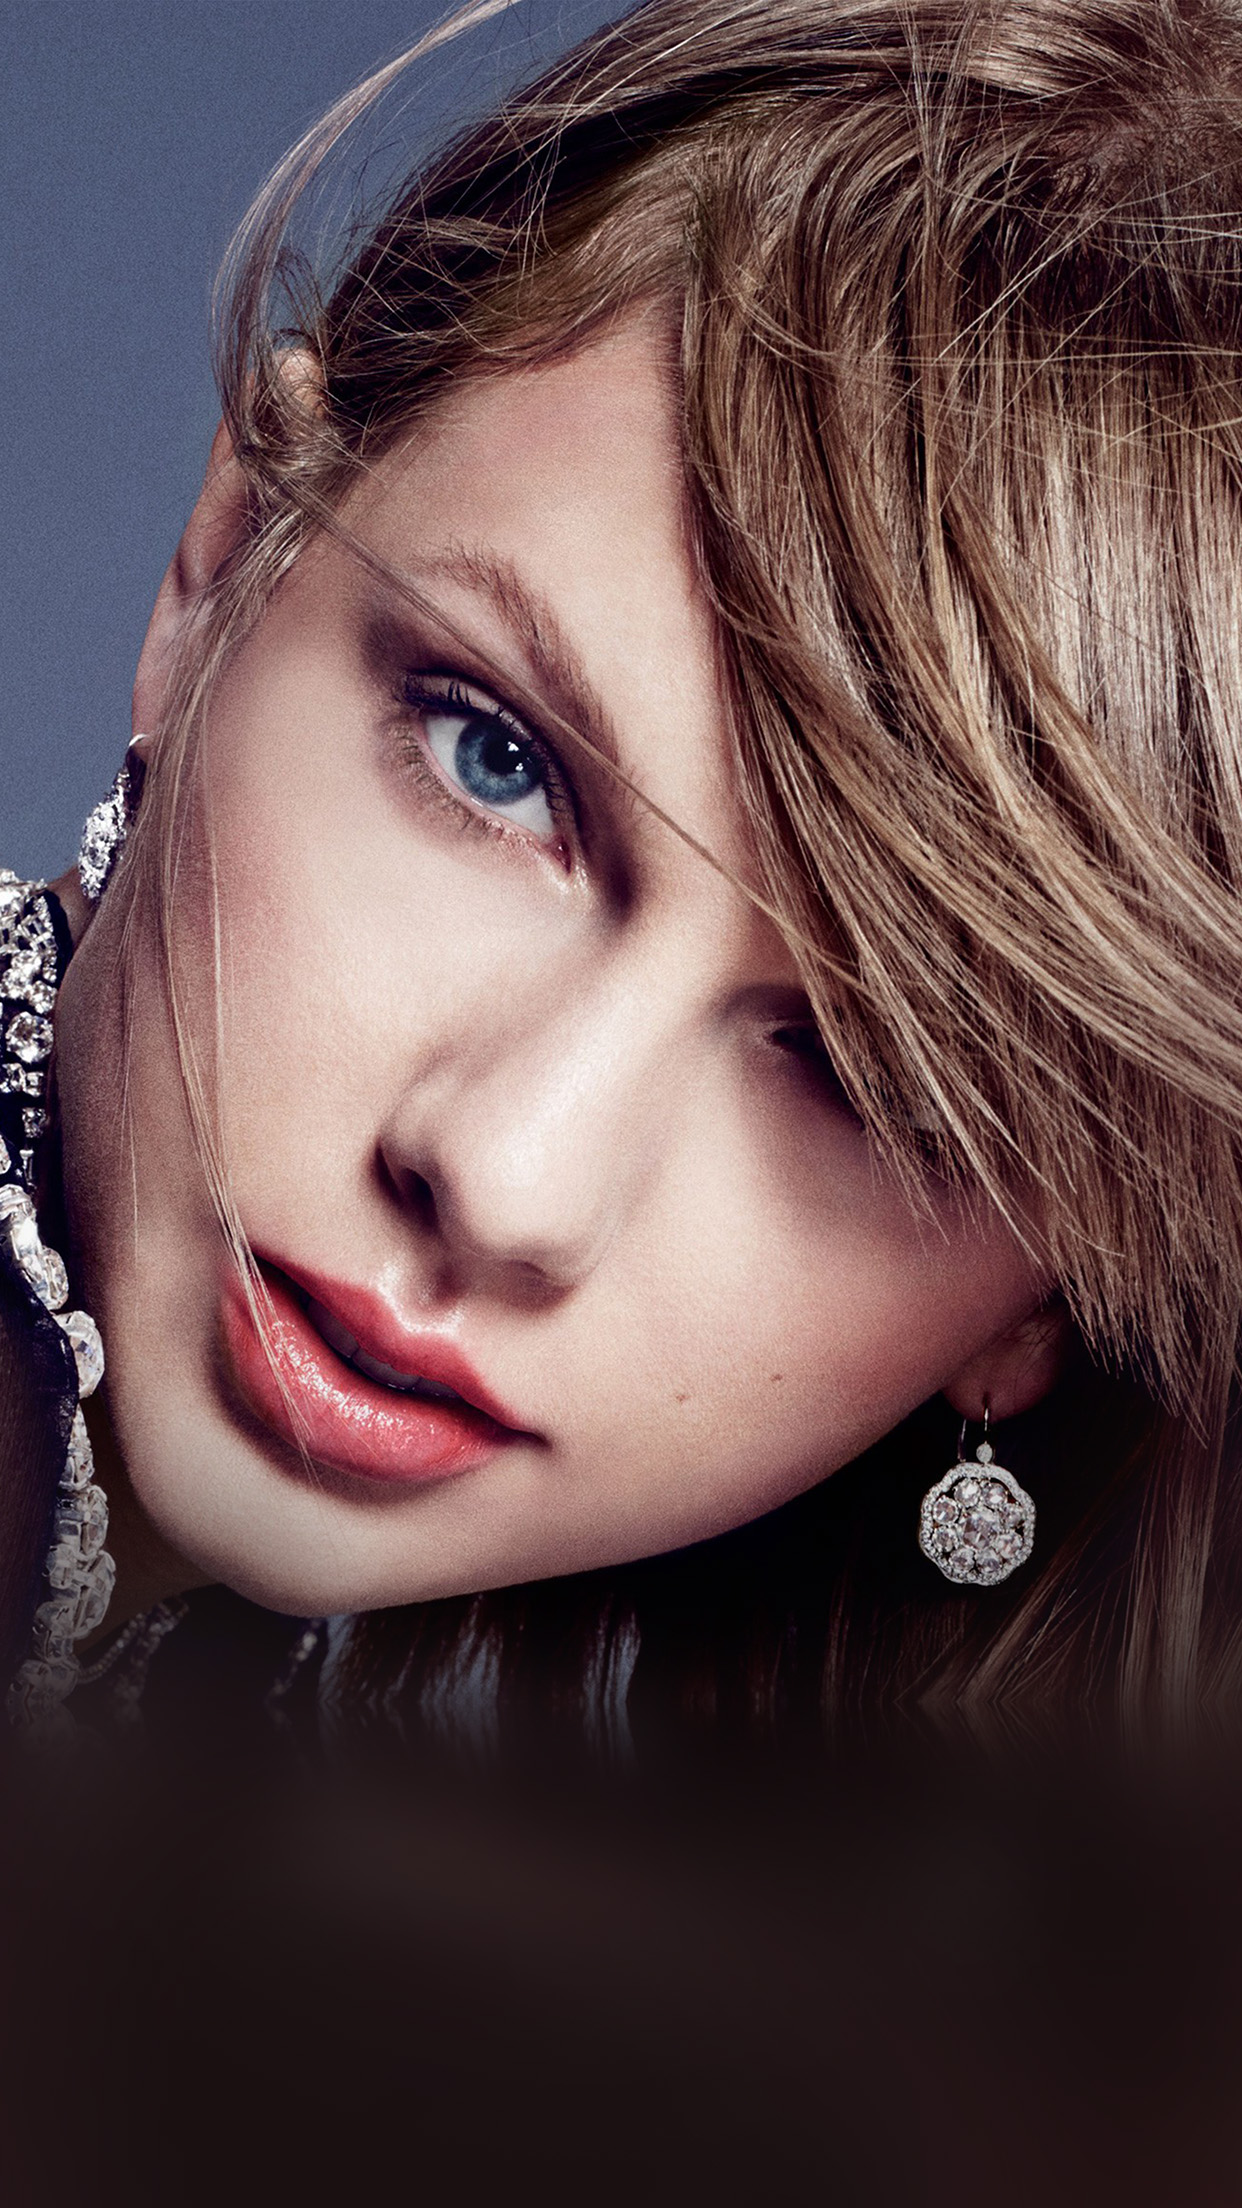 Car Wallpapers Iphone 6 Plus Hm02 Taylor Swift Face Sexy Music Wallpaper